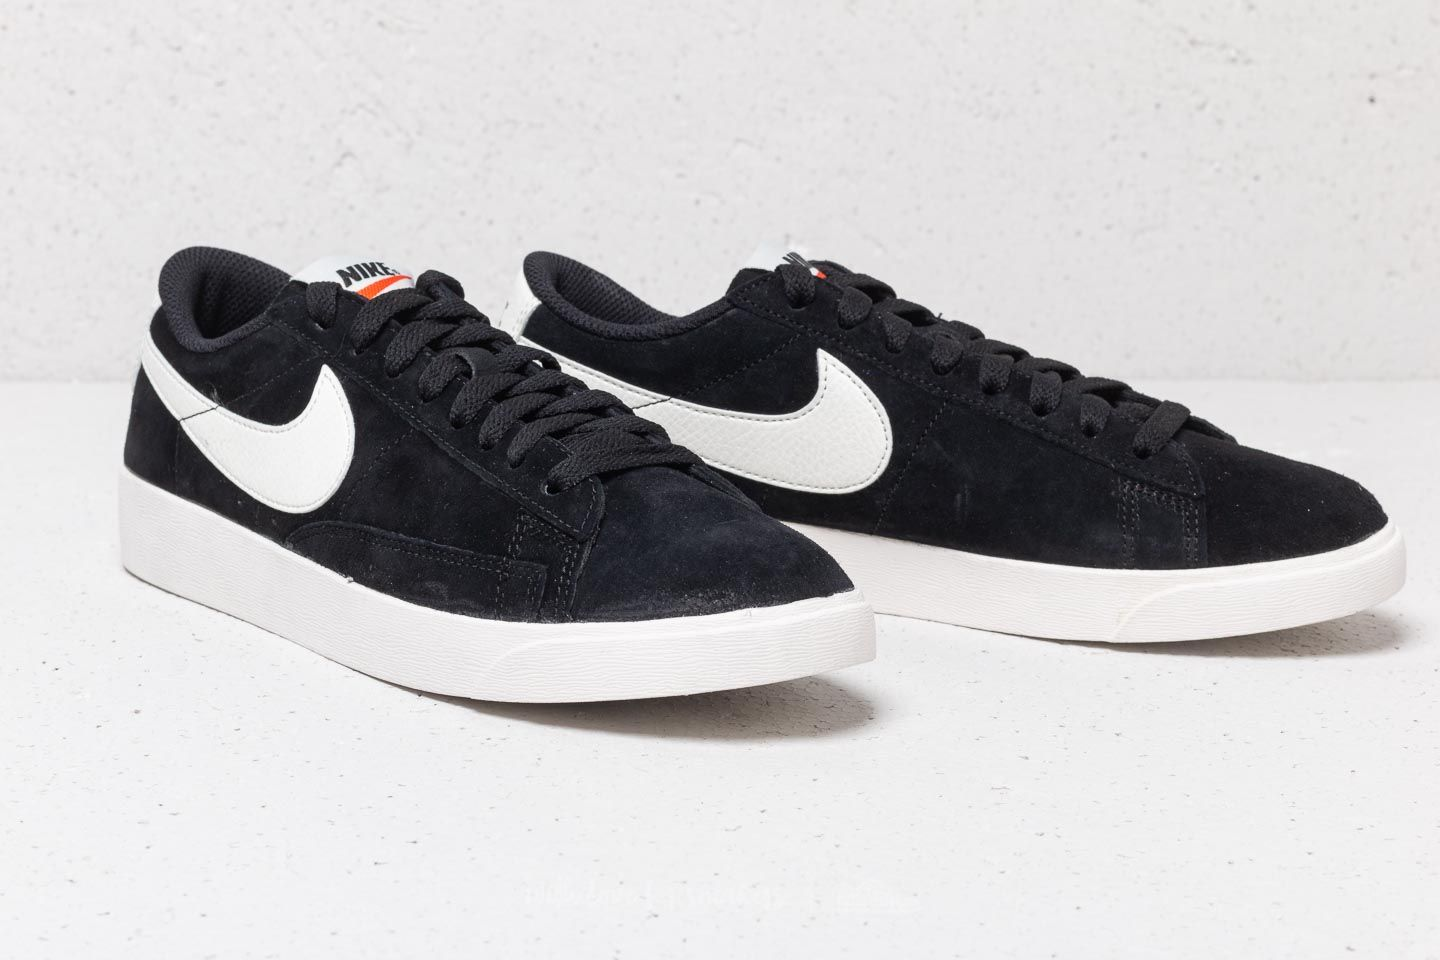 966376ad918 Nike W Blazer Low Sd Black  Sail-Sail at a great price 63 €